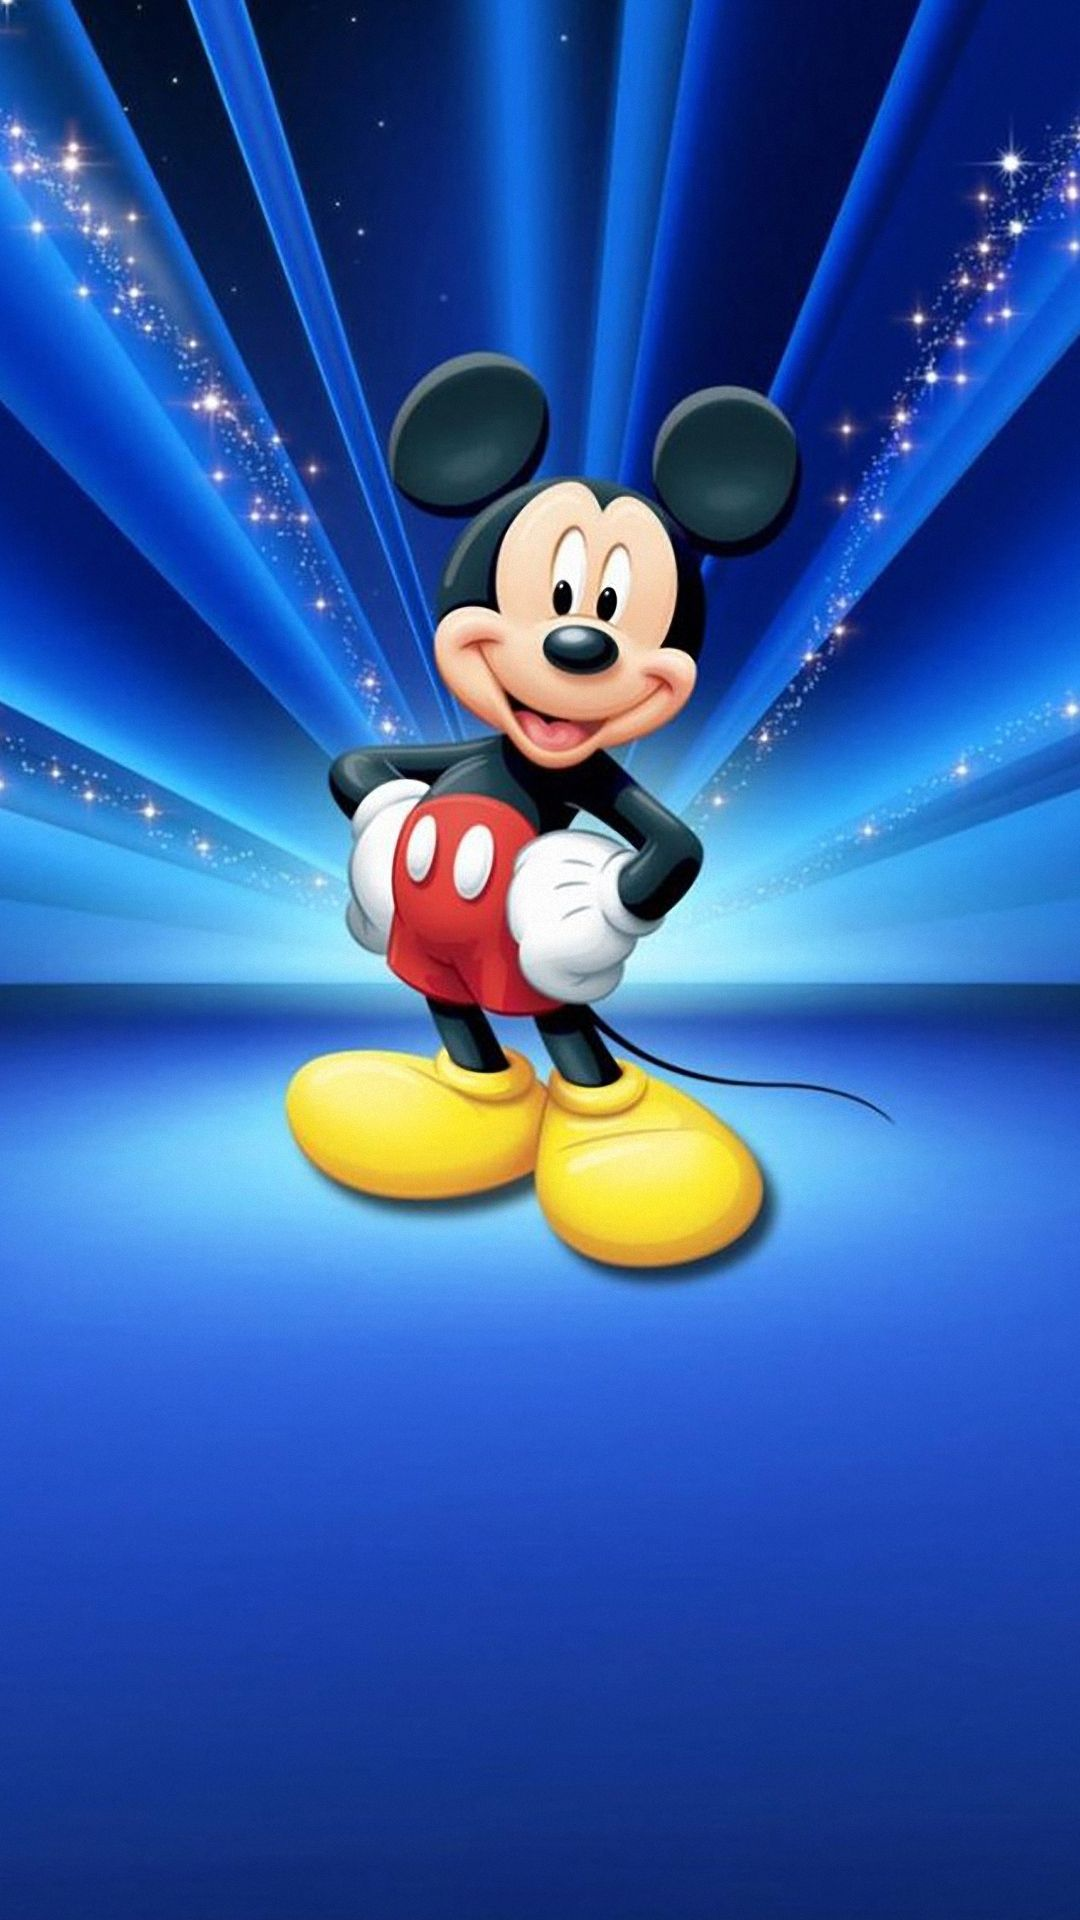 HD 1080x1920 cartoon mickey samsung galaxy note 3